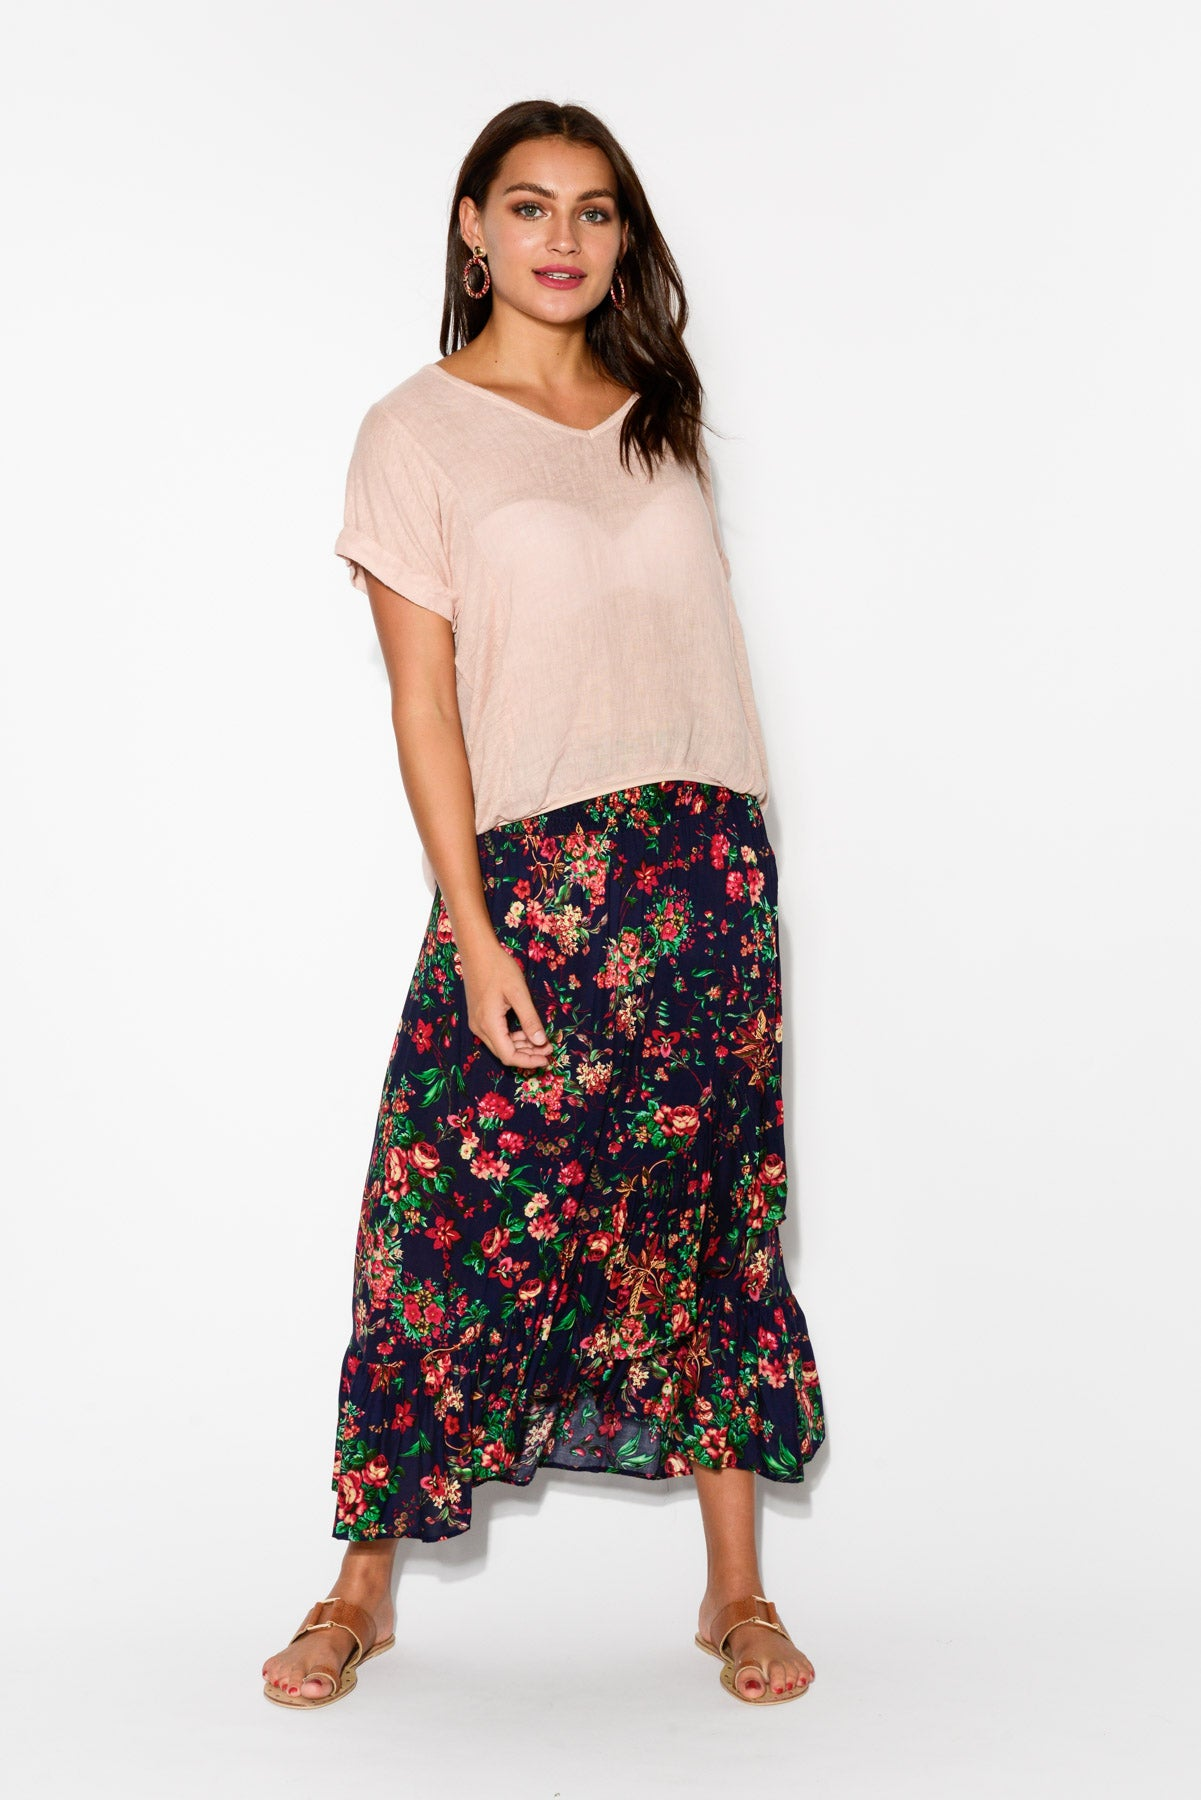 Sienna Navy Floral Ruffle Skirt - Blue Bungalow